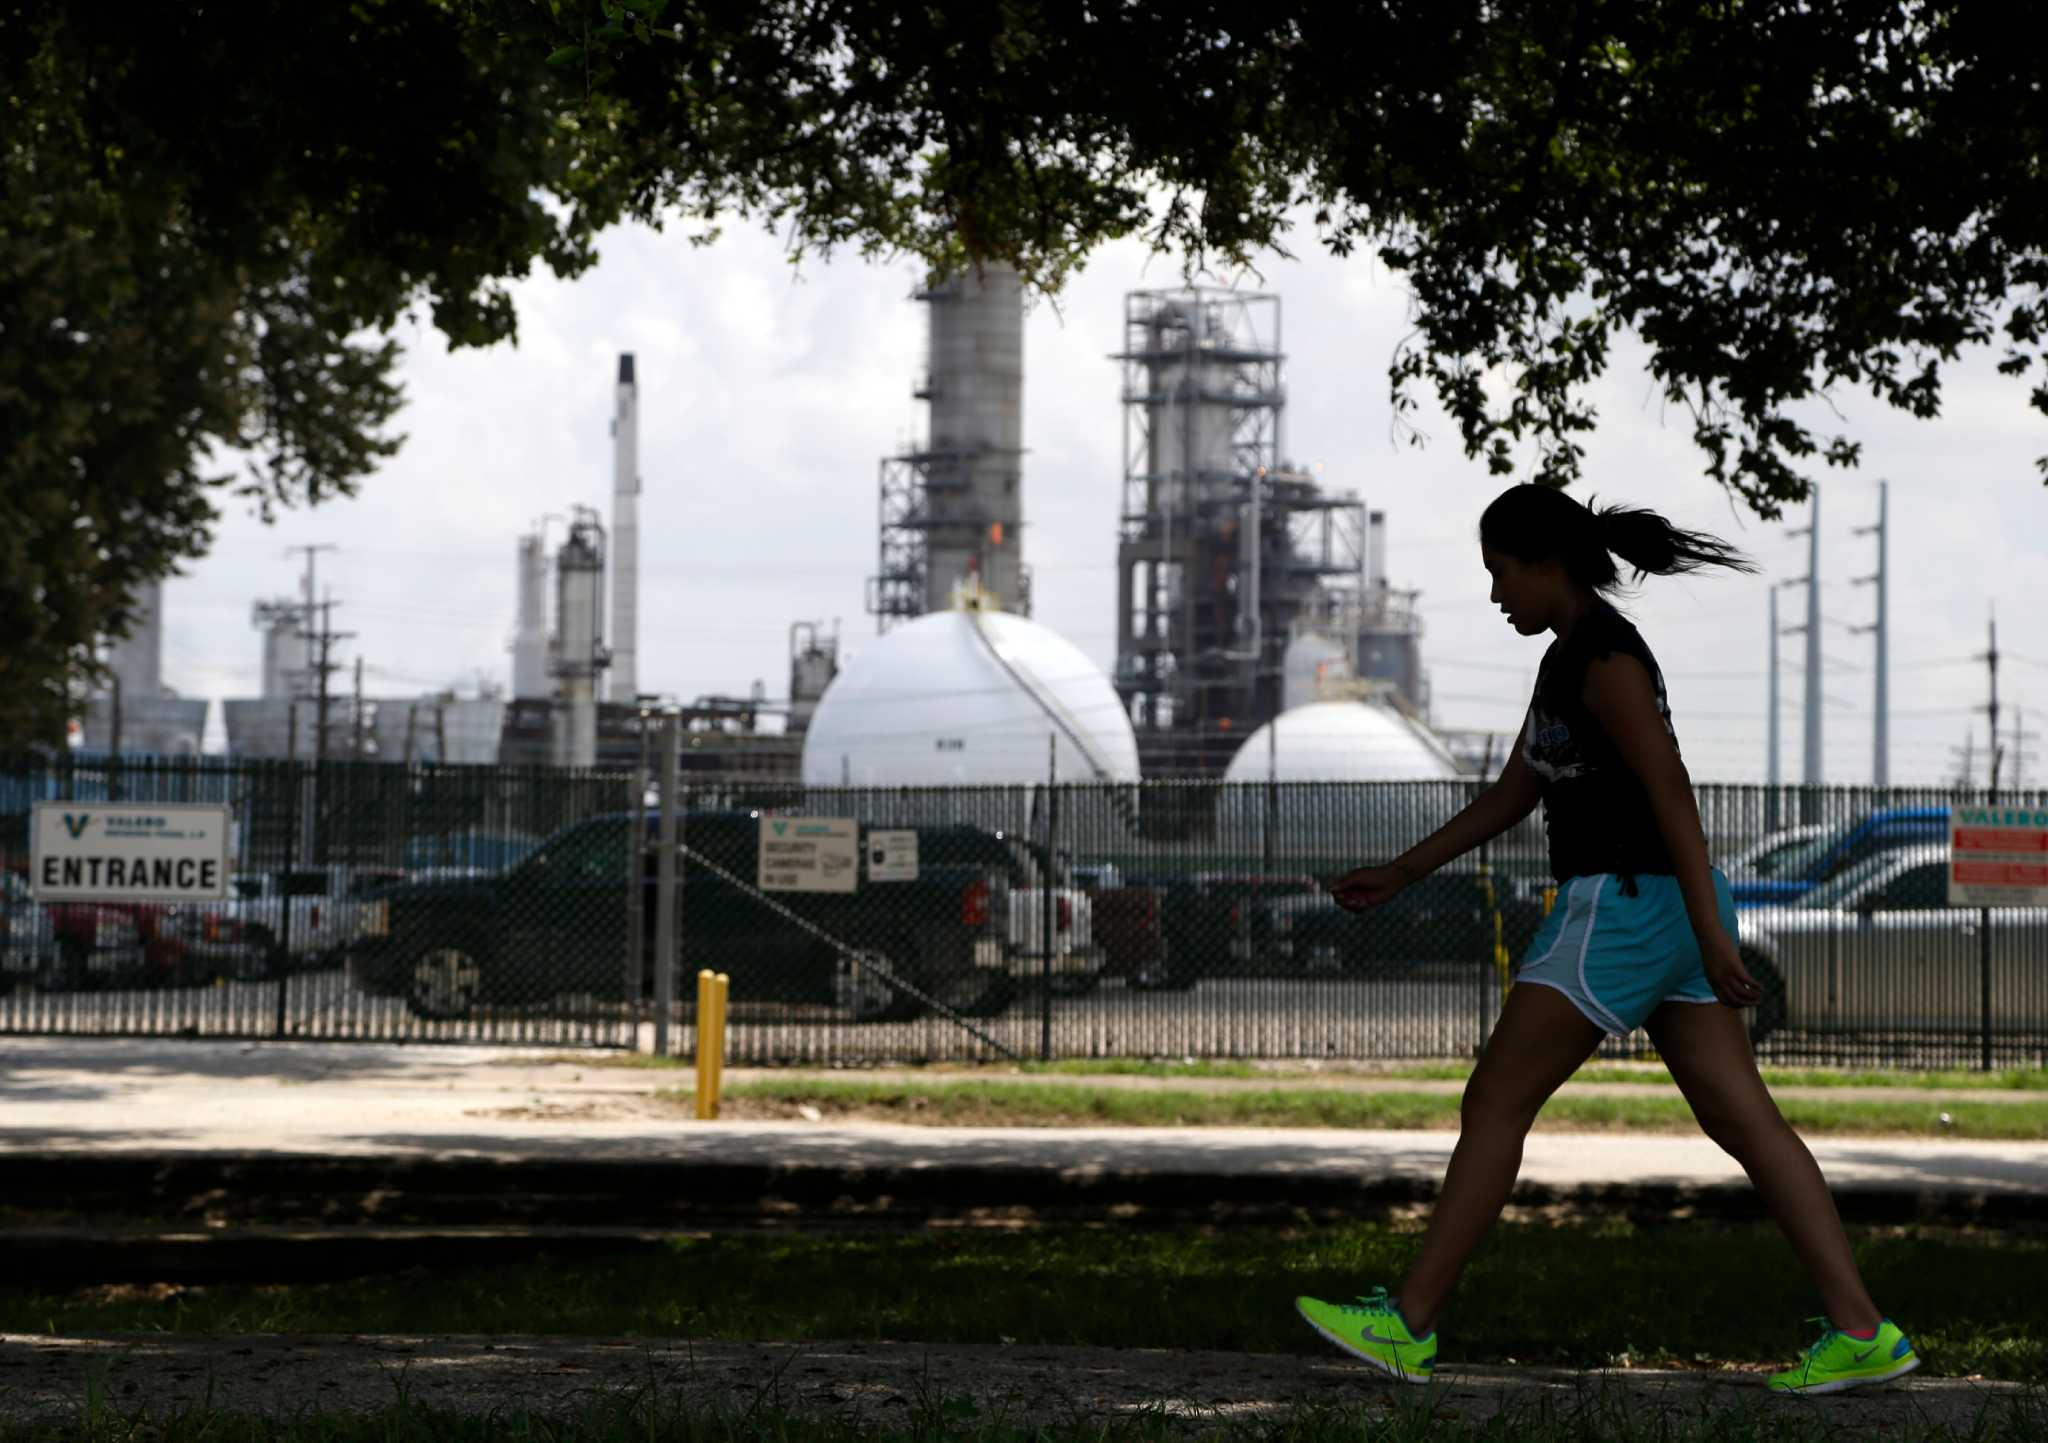 d49579097c3 Valero seeks special deal for its Manchester refinery ...